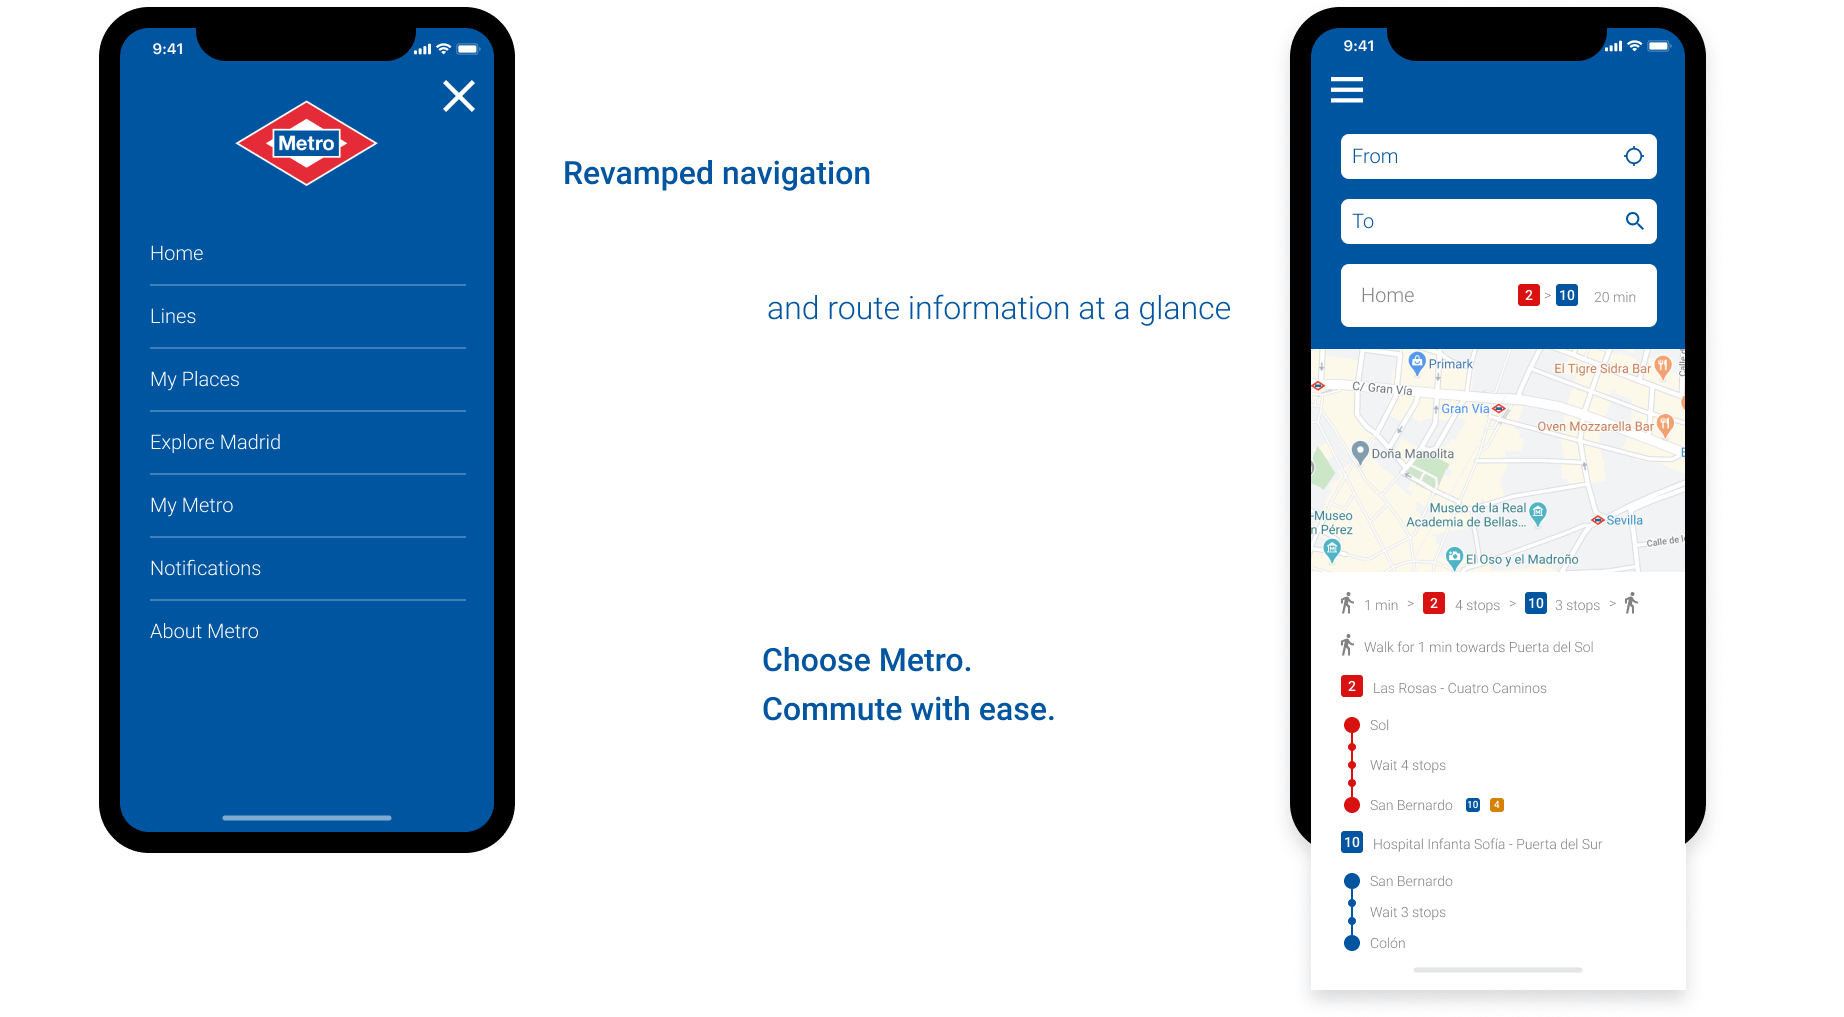 redesigned navigation and route screens